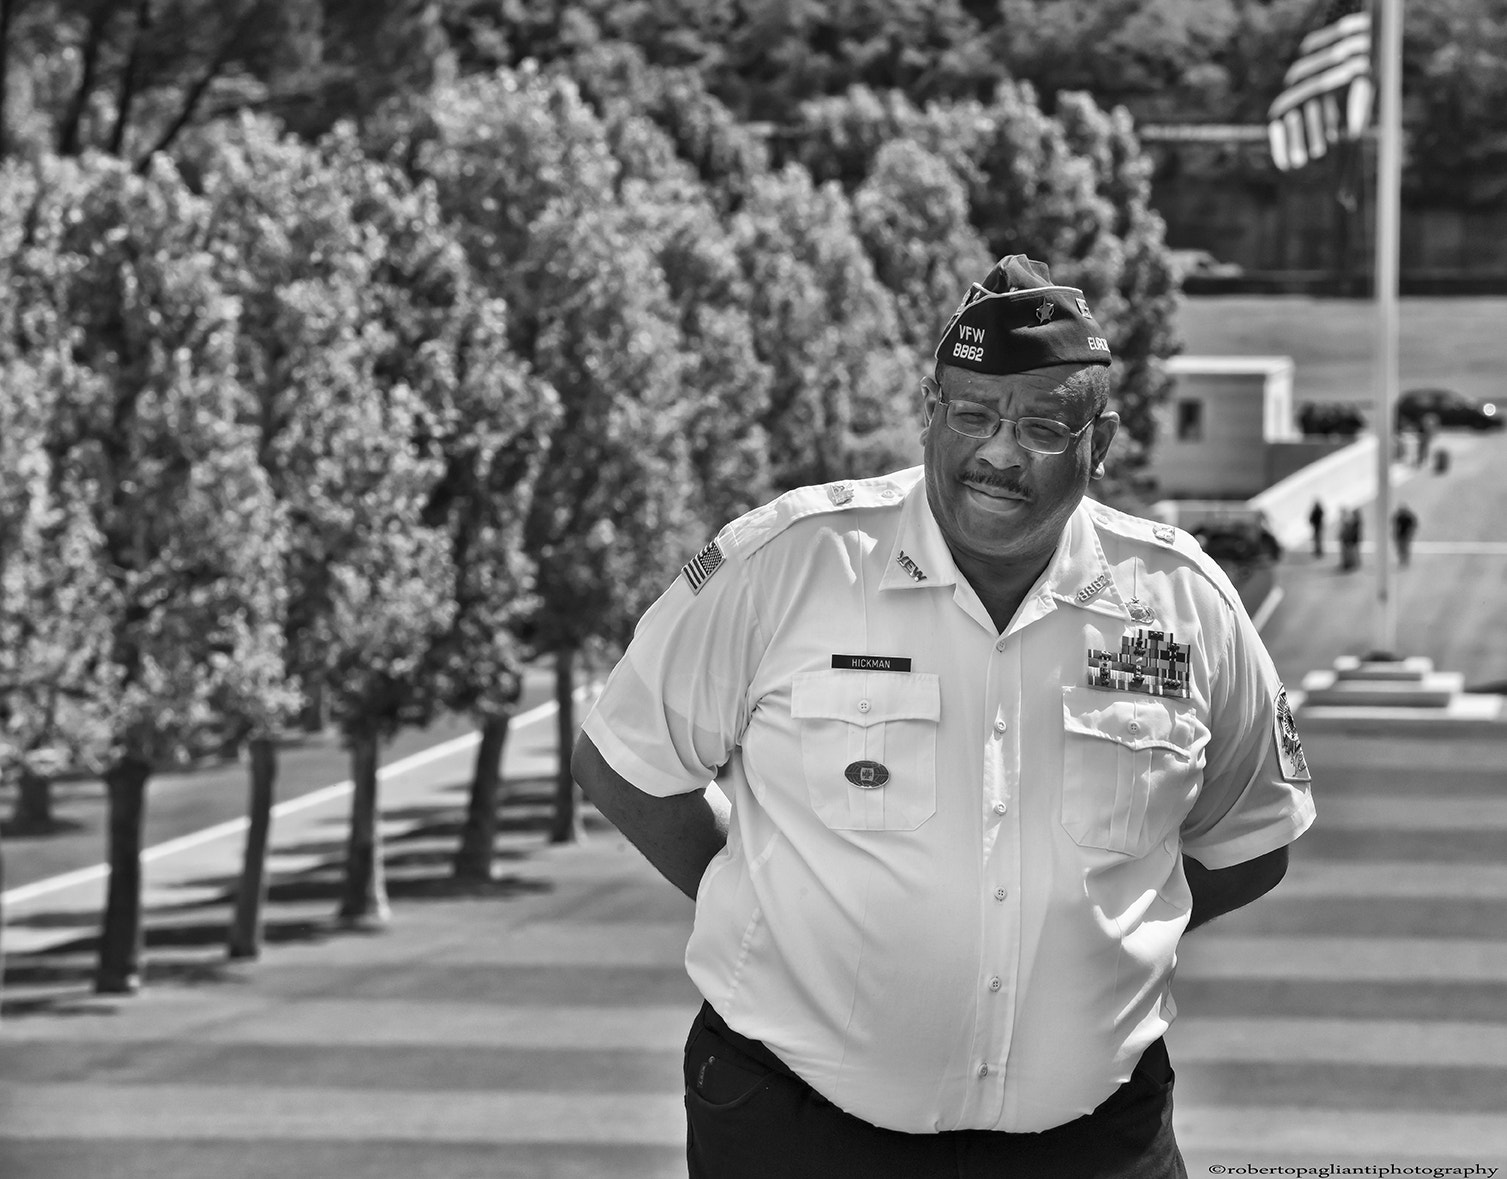 Photograph Memorial day - Il reduce by Roberto Paglianti on 500px